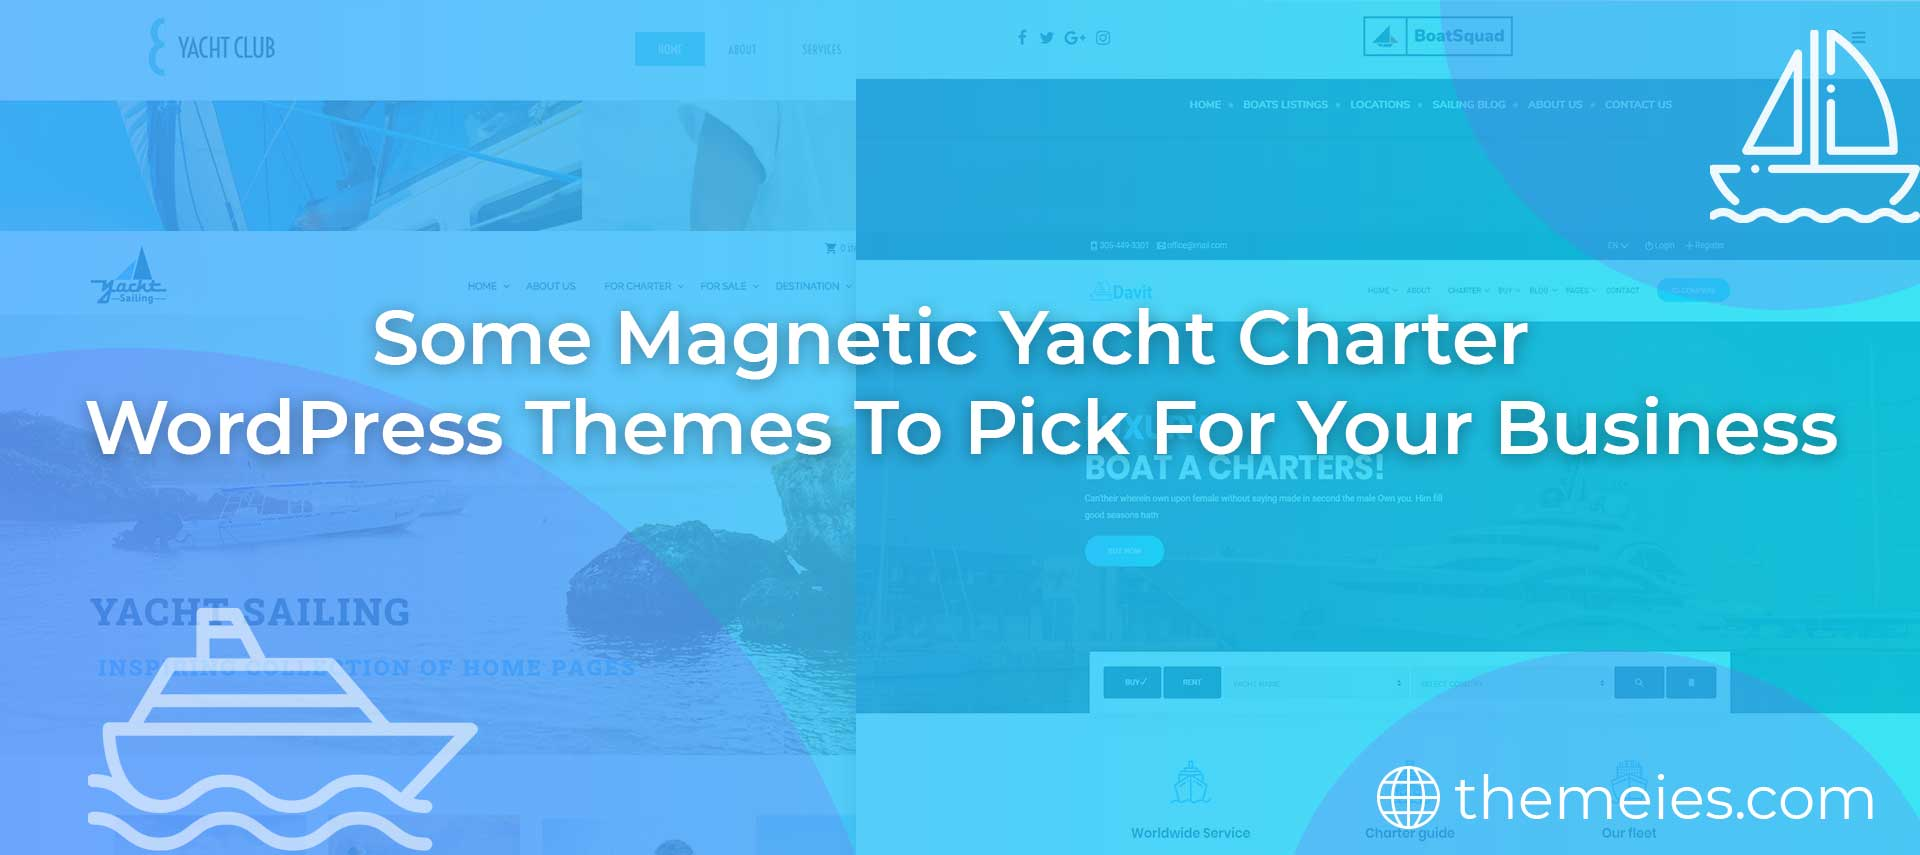 yacht charter WordPress themes